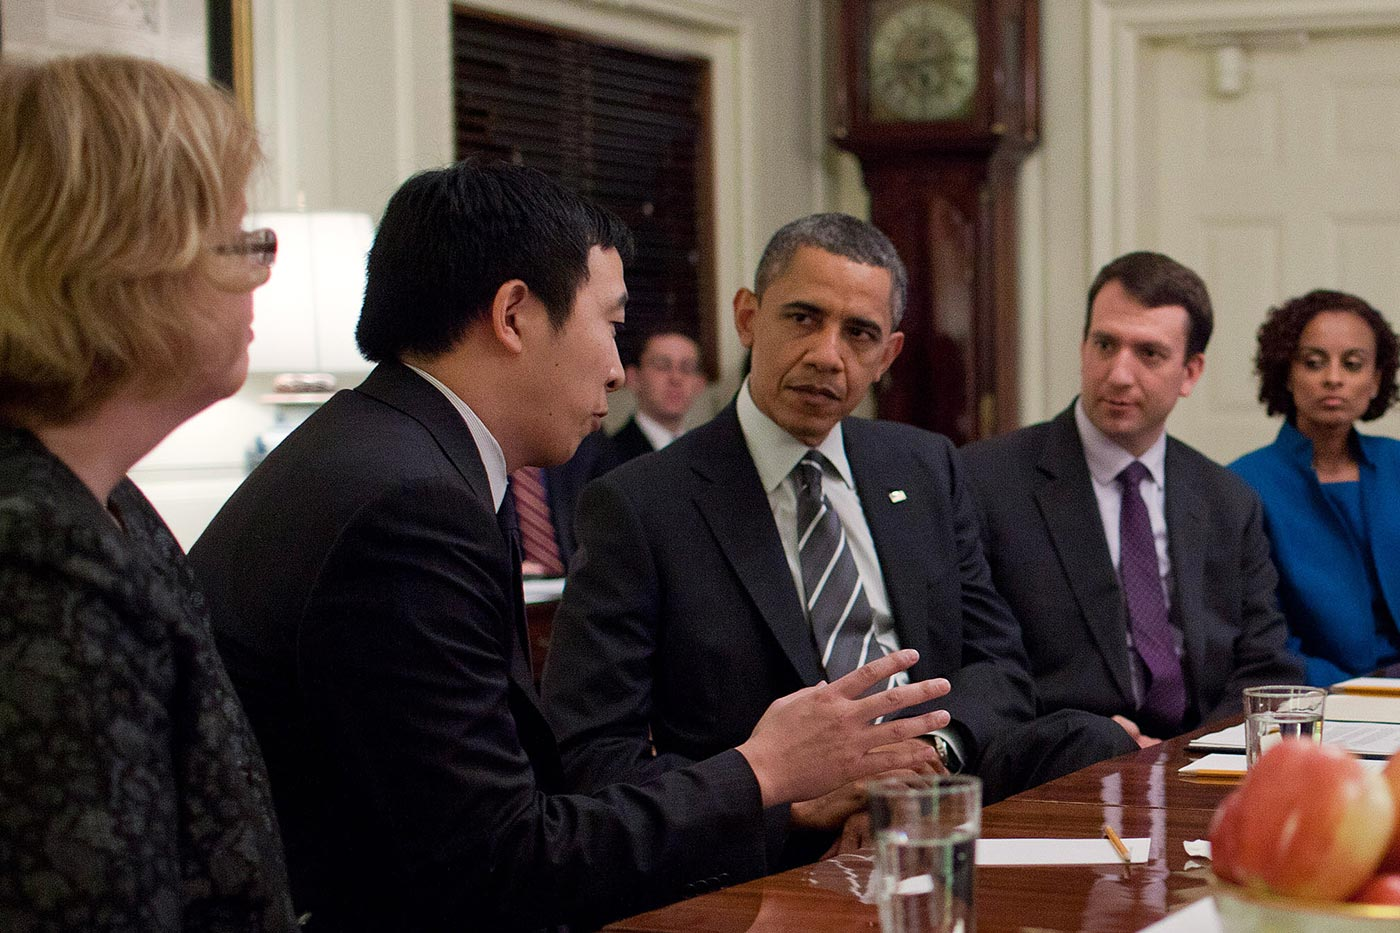 Andrew Yang speaks with former President Barack Obama at a table surrounded by Champion of Change colleagues.